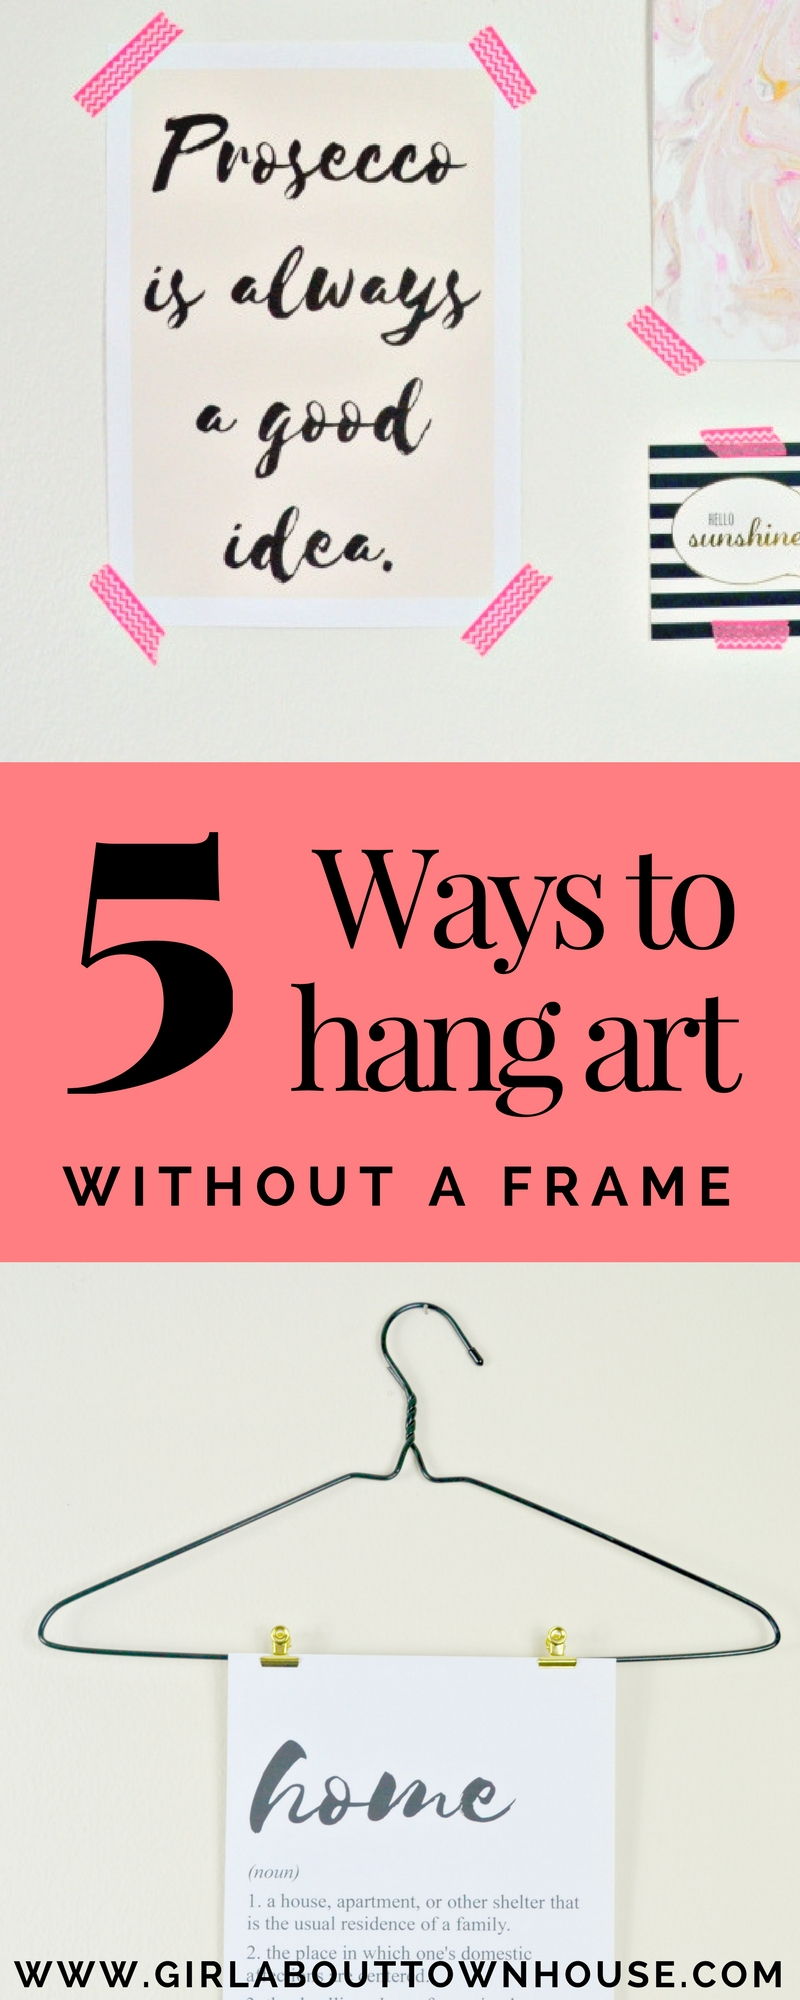 How to hang pictures without frames - Girl about townhouse